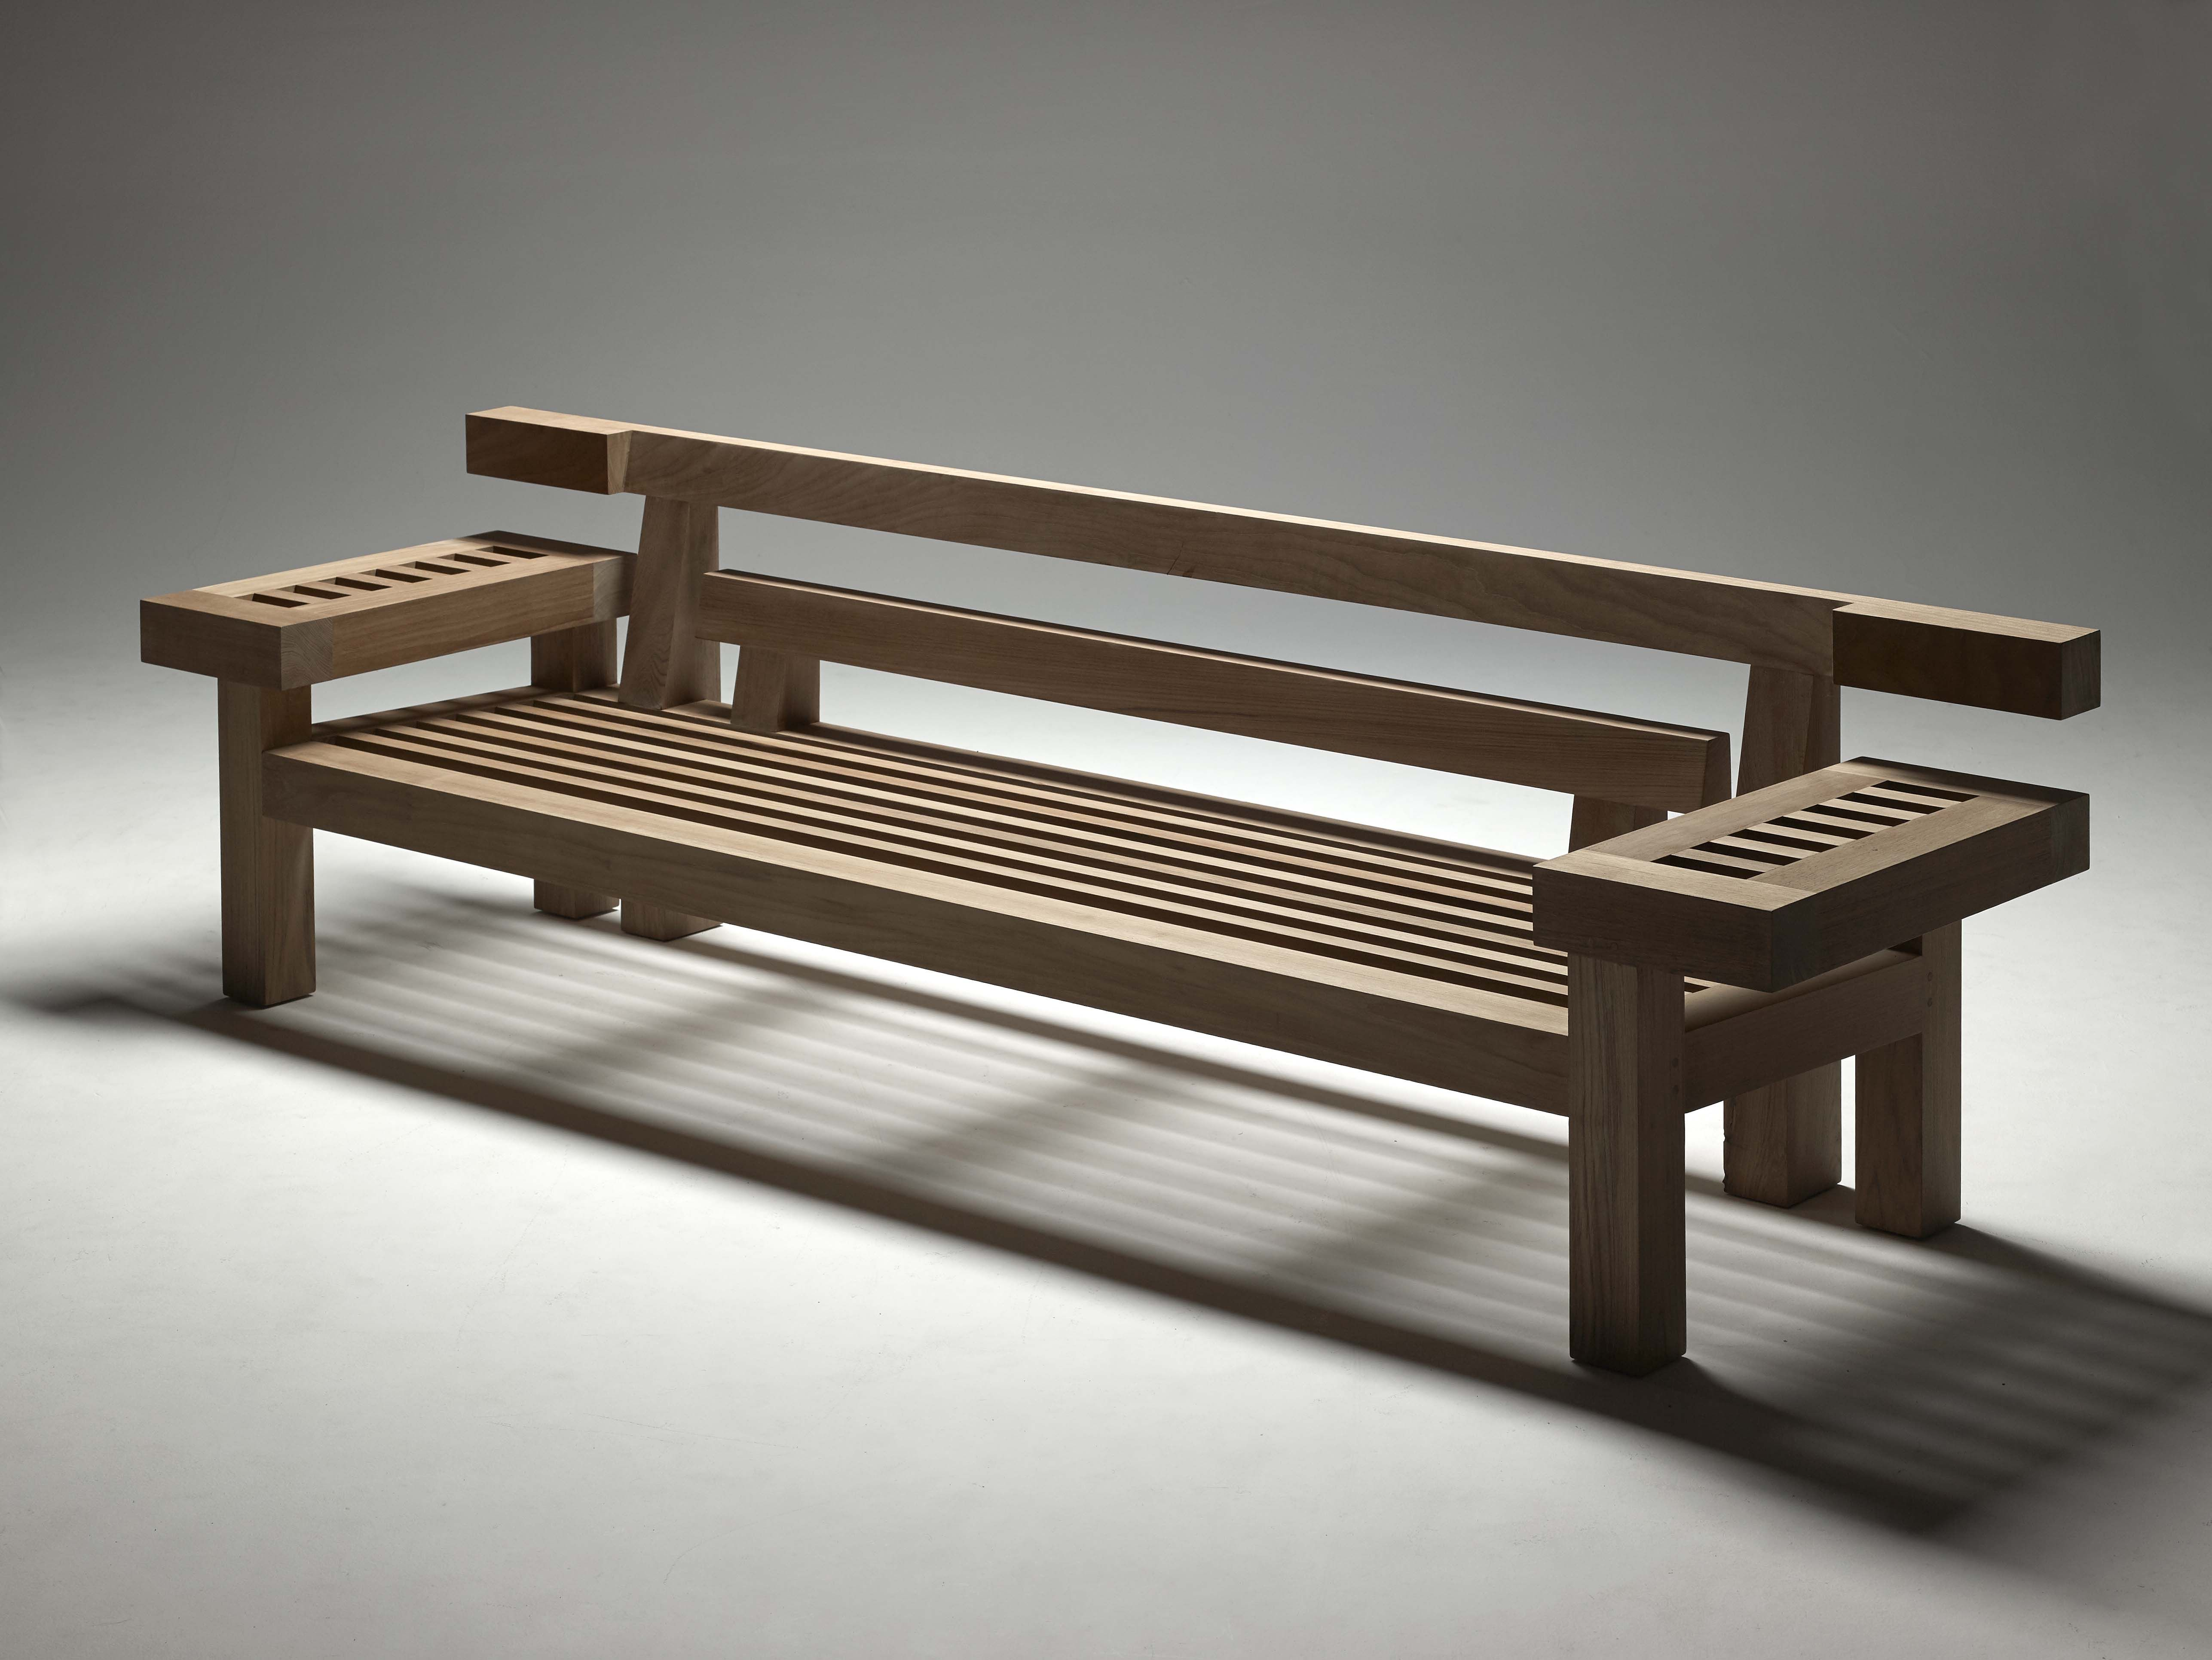 ... ROYAL BOTANIA Design Louis Benech. From Archiproducts · NARA LOUNGE  BENCH